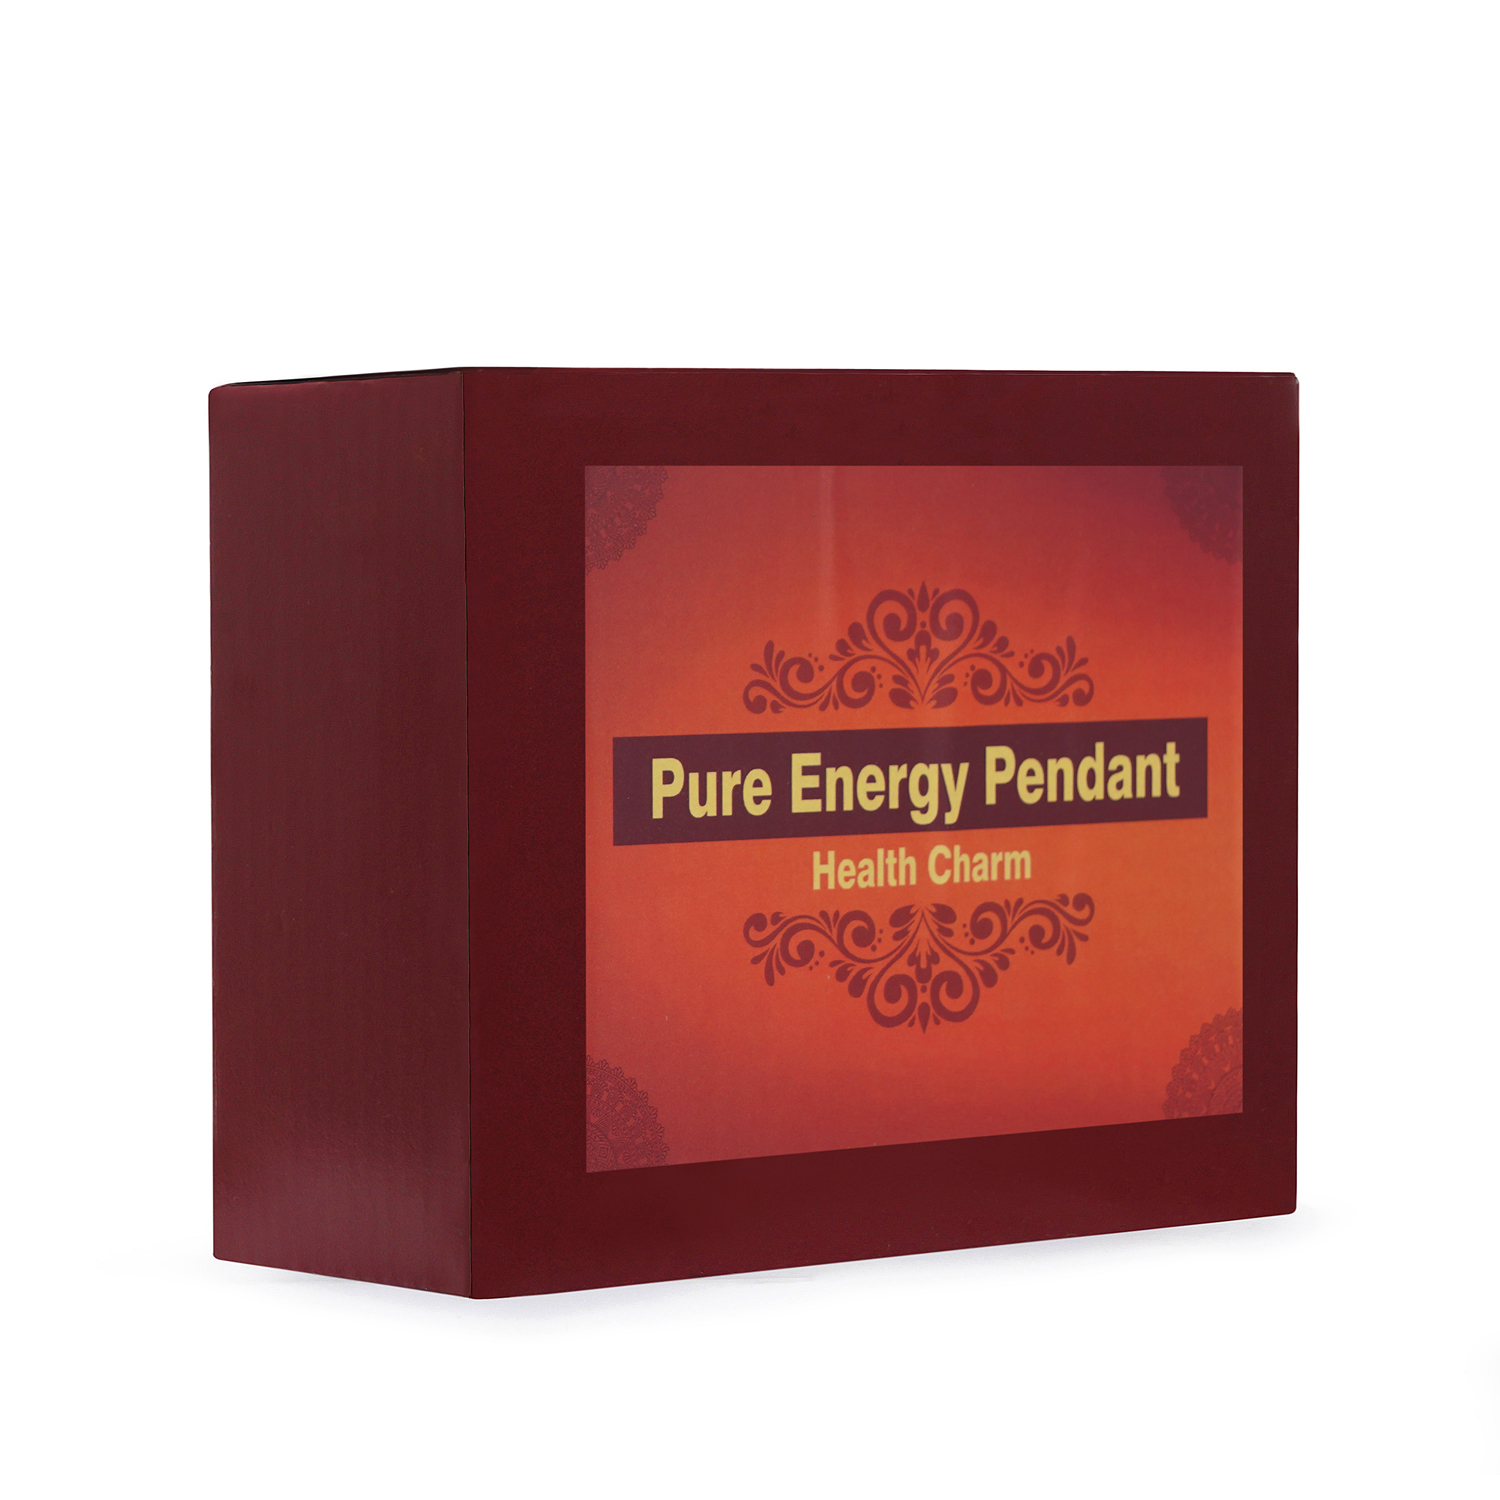 Pure Energy Pendent